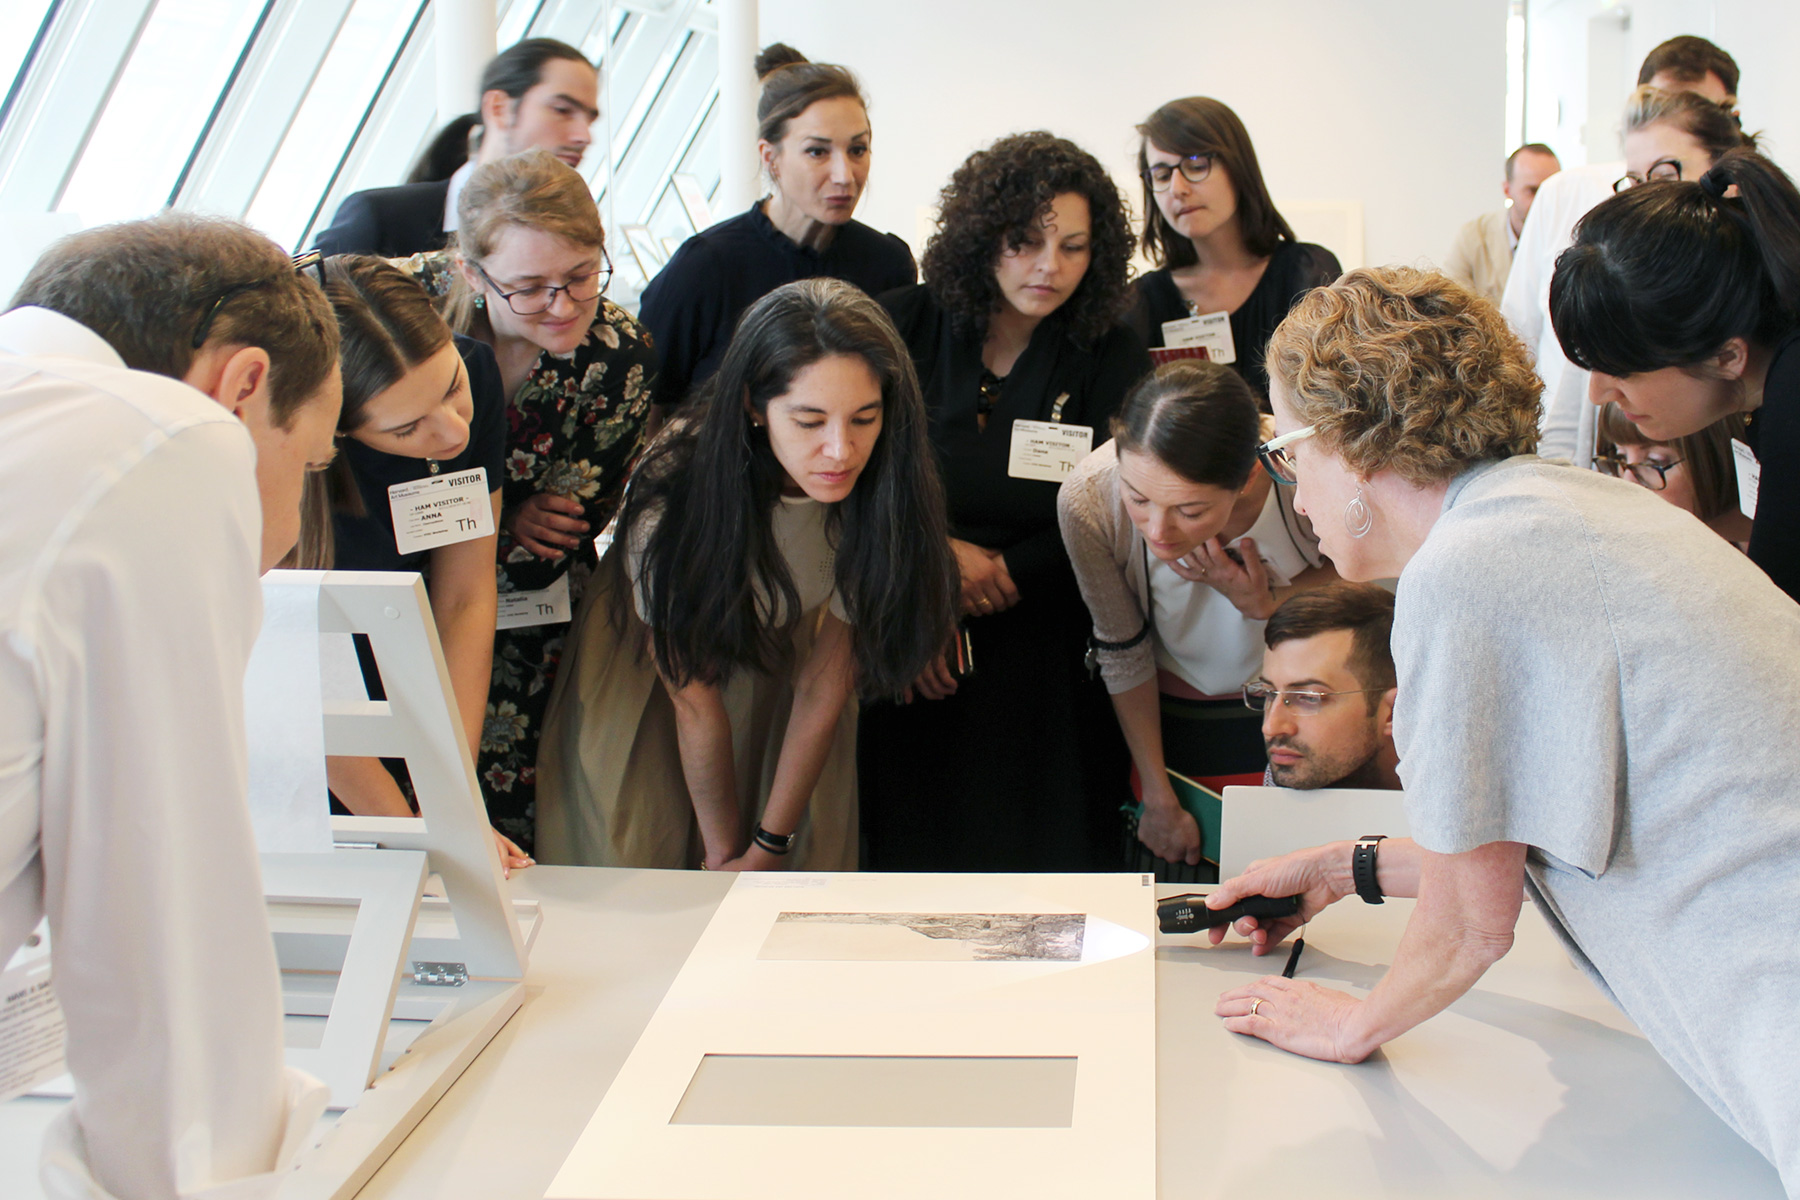 Several participants look on as Knipe holds a light to a print, just under the matted frame, and Kunz stands nearby.